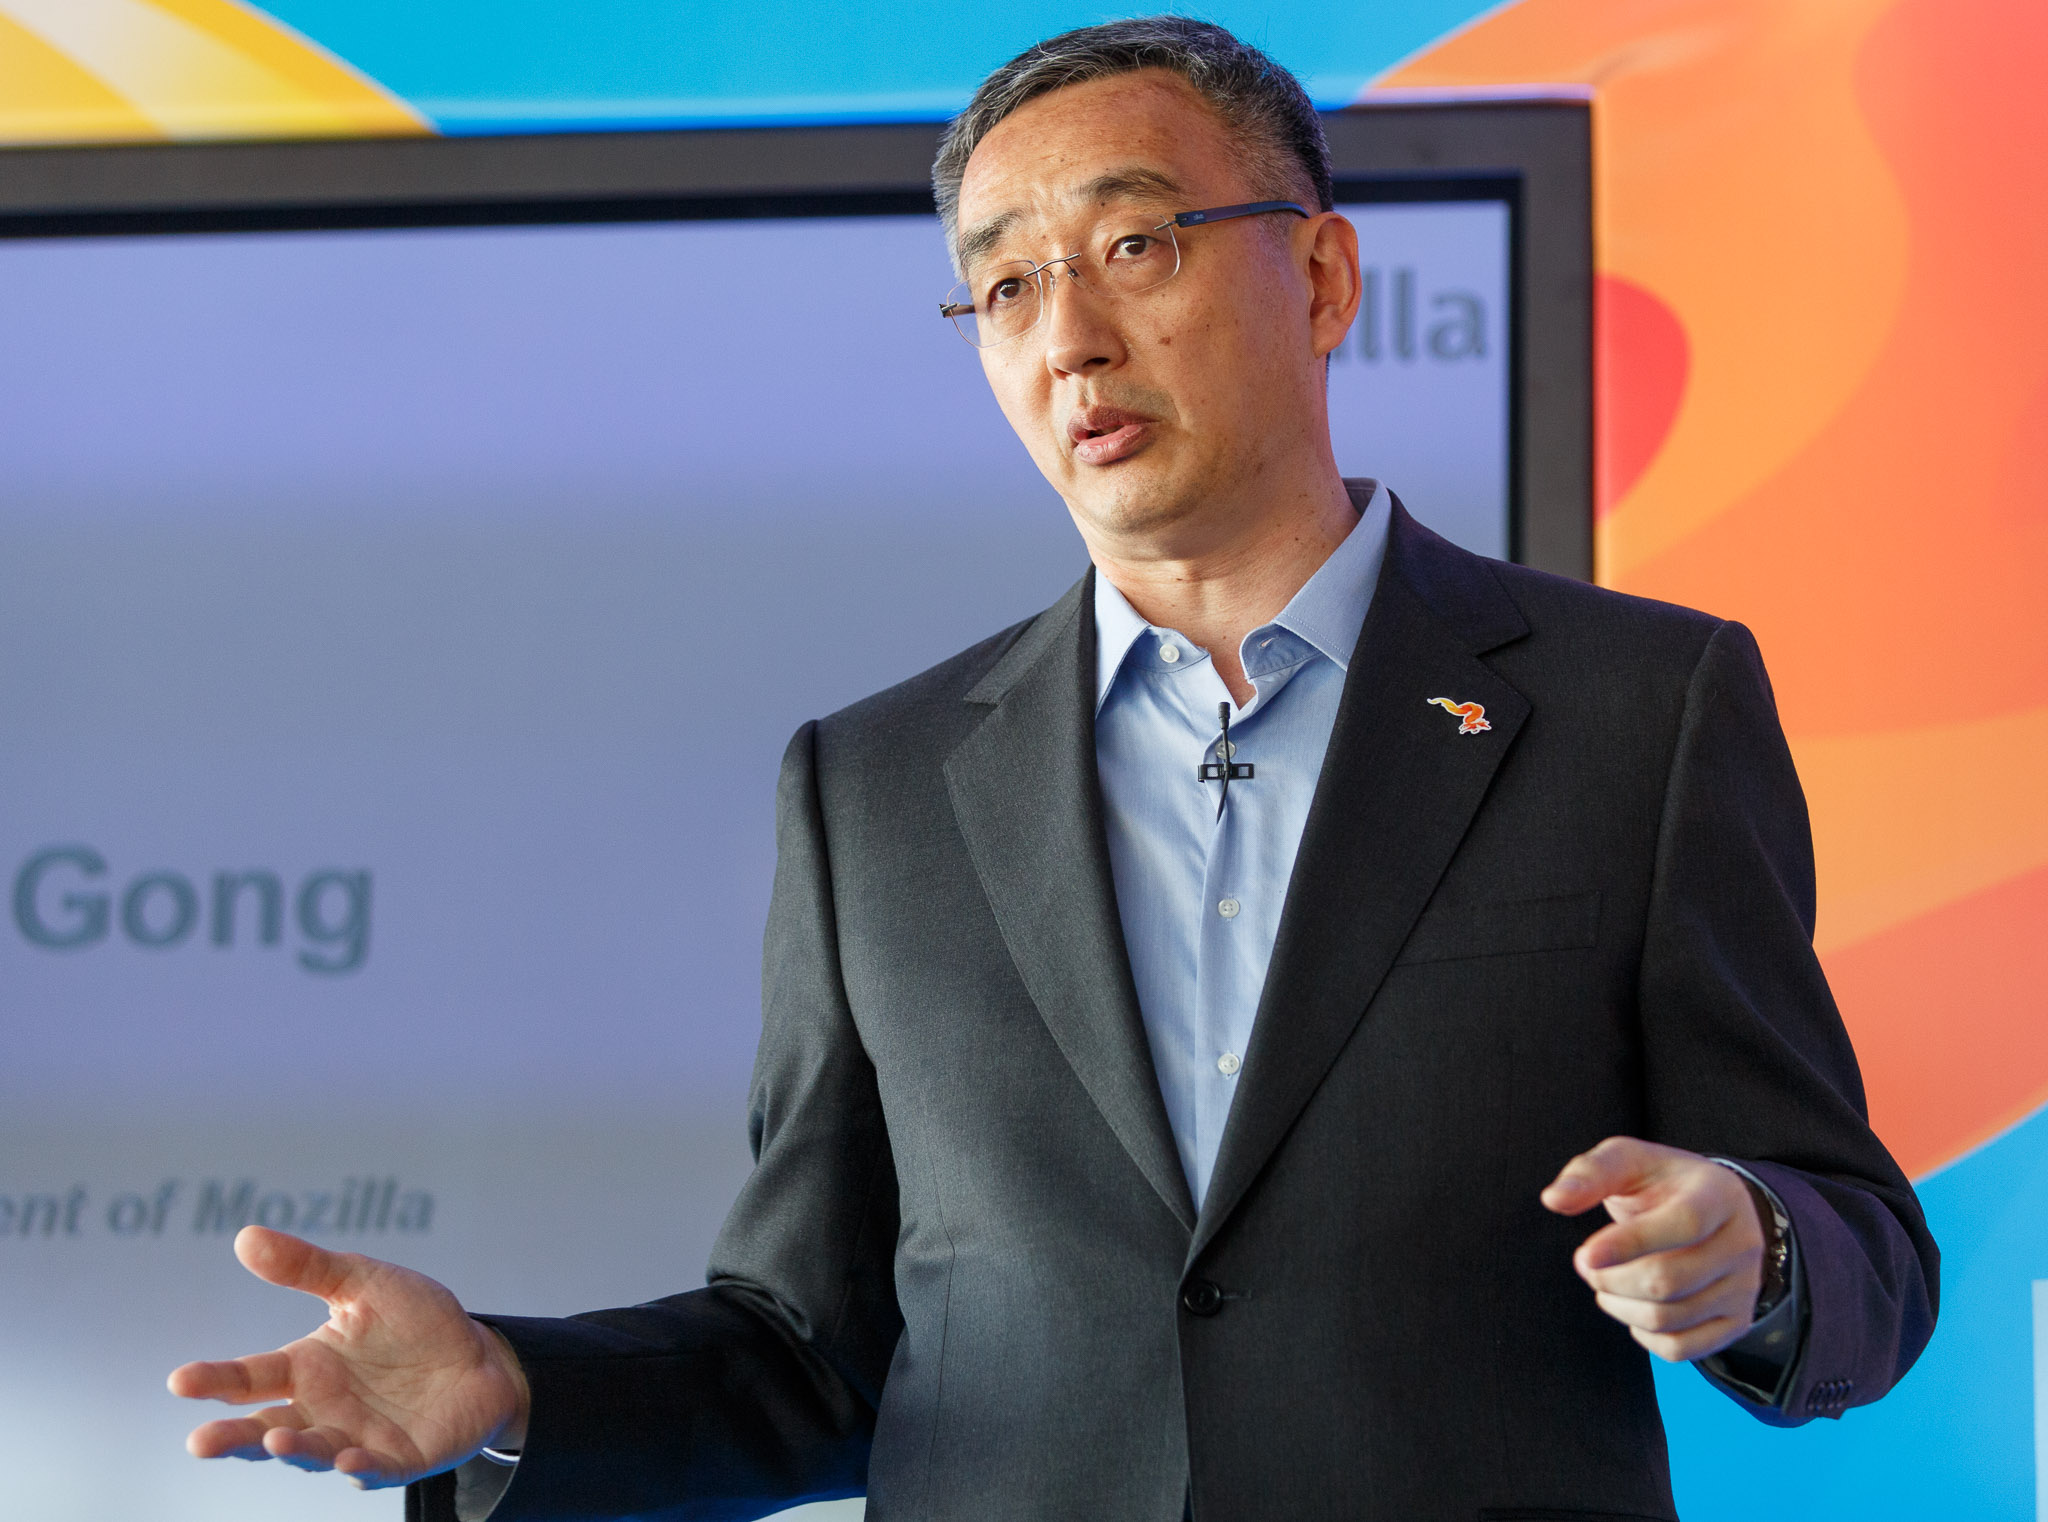 Li Gong, then Mozilla president, speaks at Mobile World Congress in March. In April he left to become CEO of a startup that for now is called Gone Fishing .